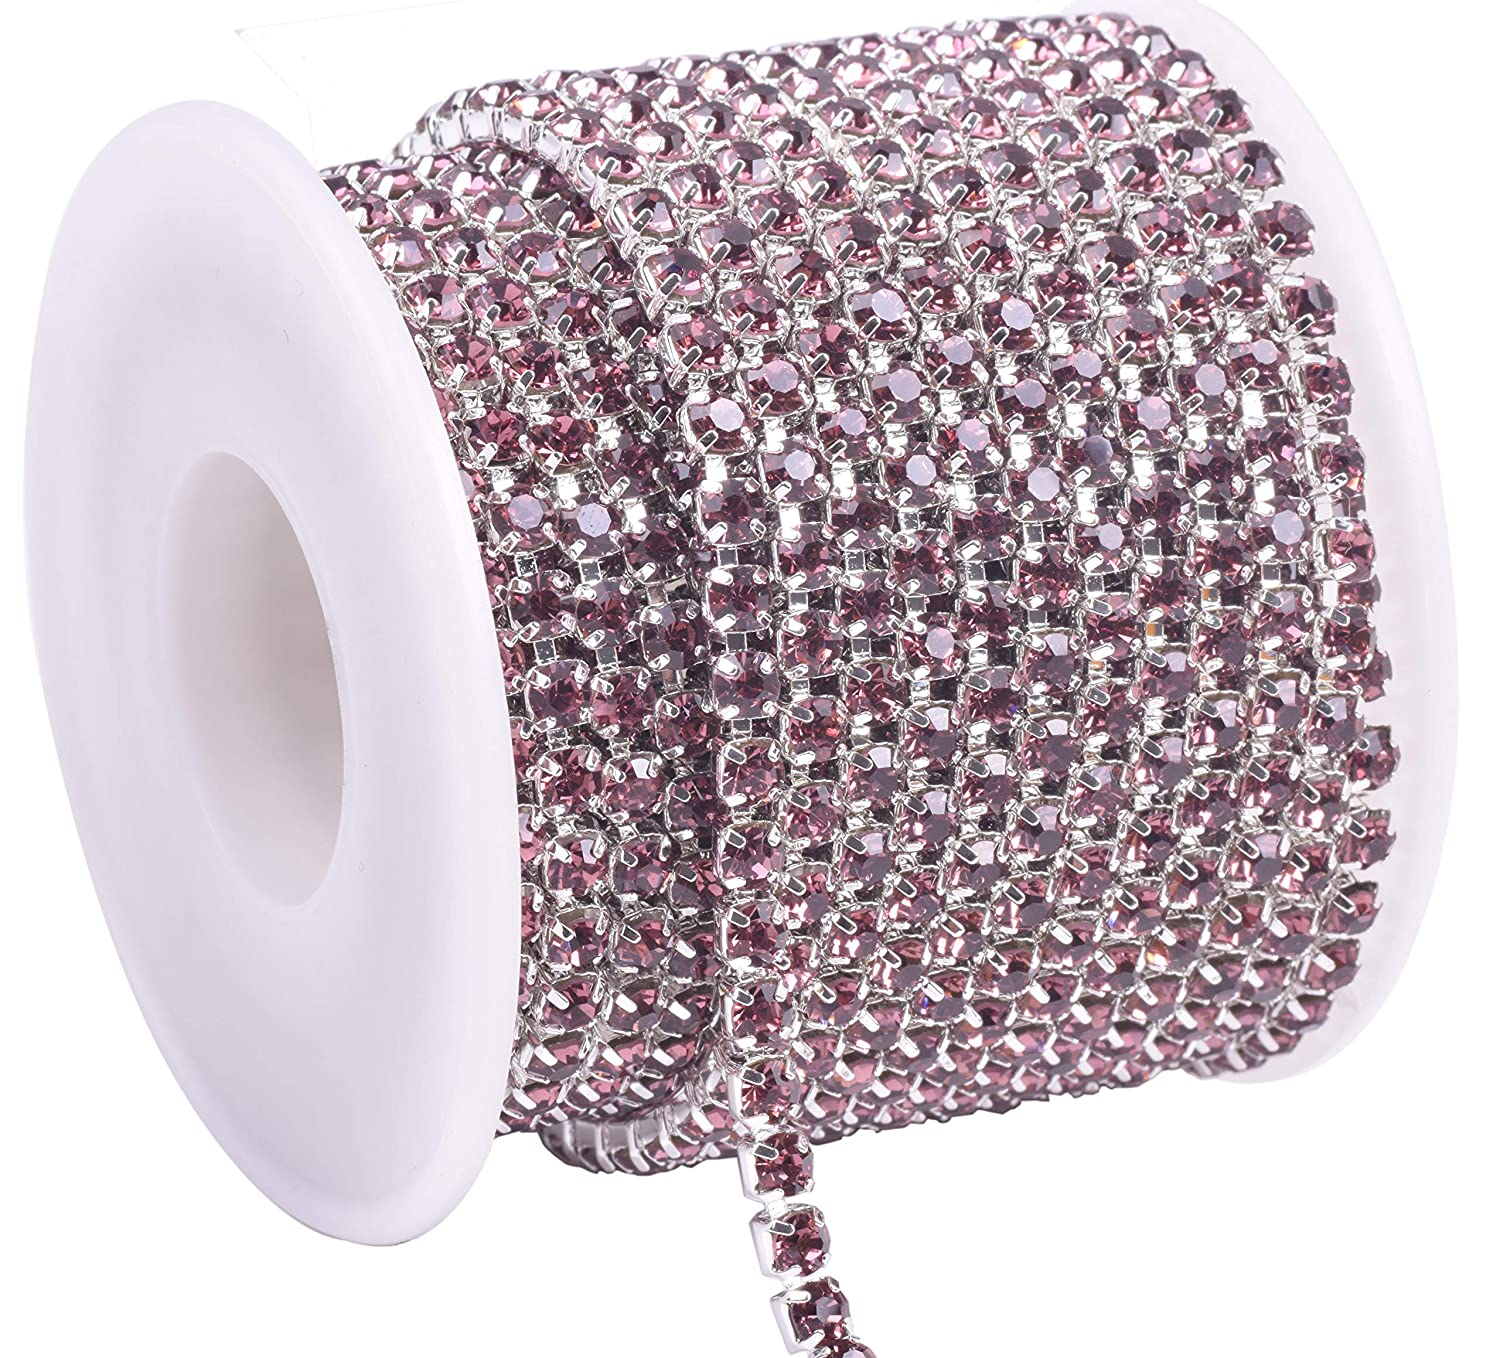 KAOYOO 1 Roll 10 Yards Crystal Rhinestone Close Chain Trim Silver Chain with Light Violet Crystal Beads SS16//4.0mm